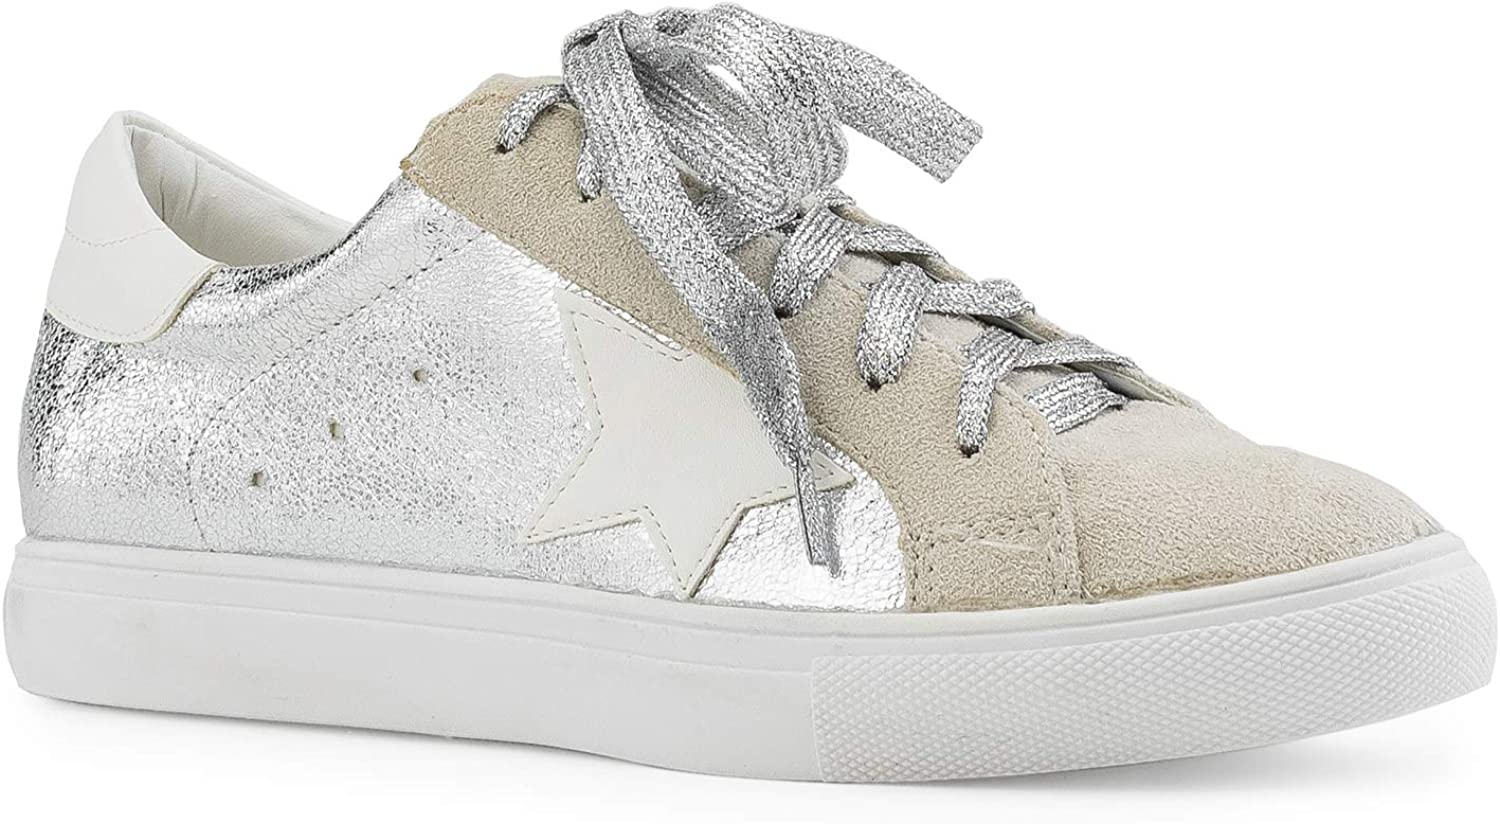 RF ROOM OF FASHION Women's Casual Low Top Trendy Fashion Sneakers Flats